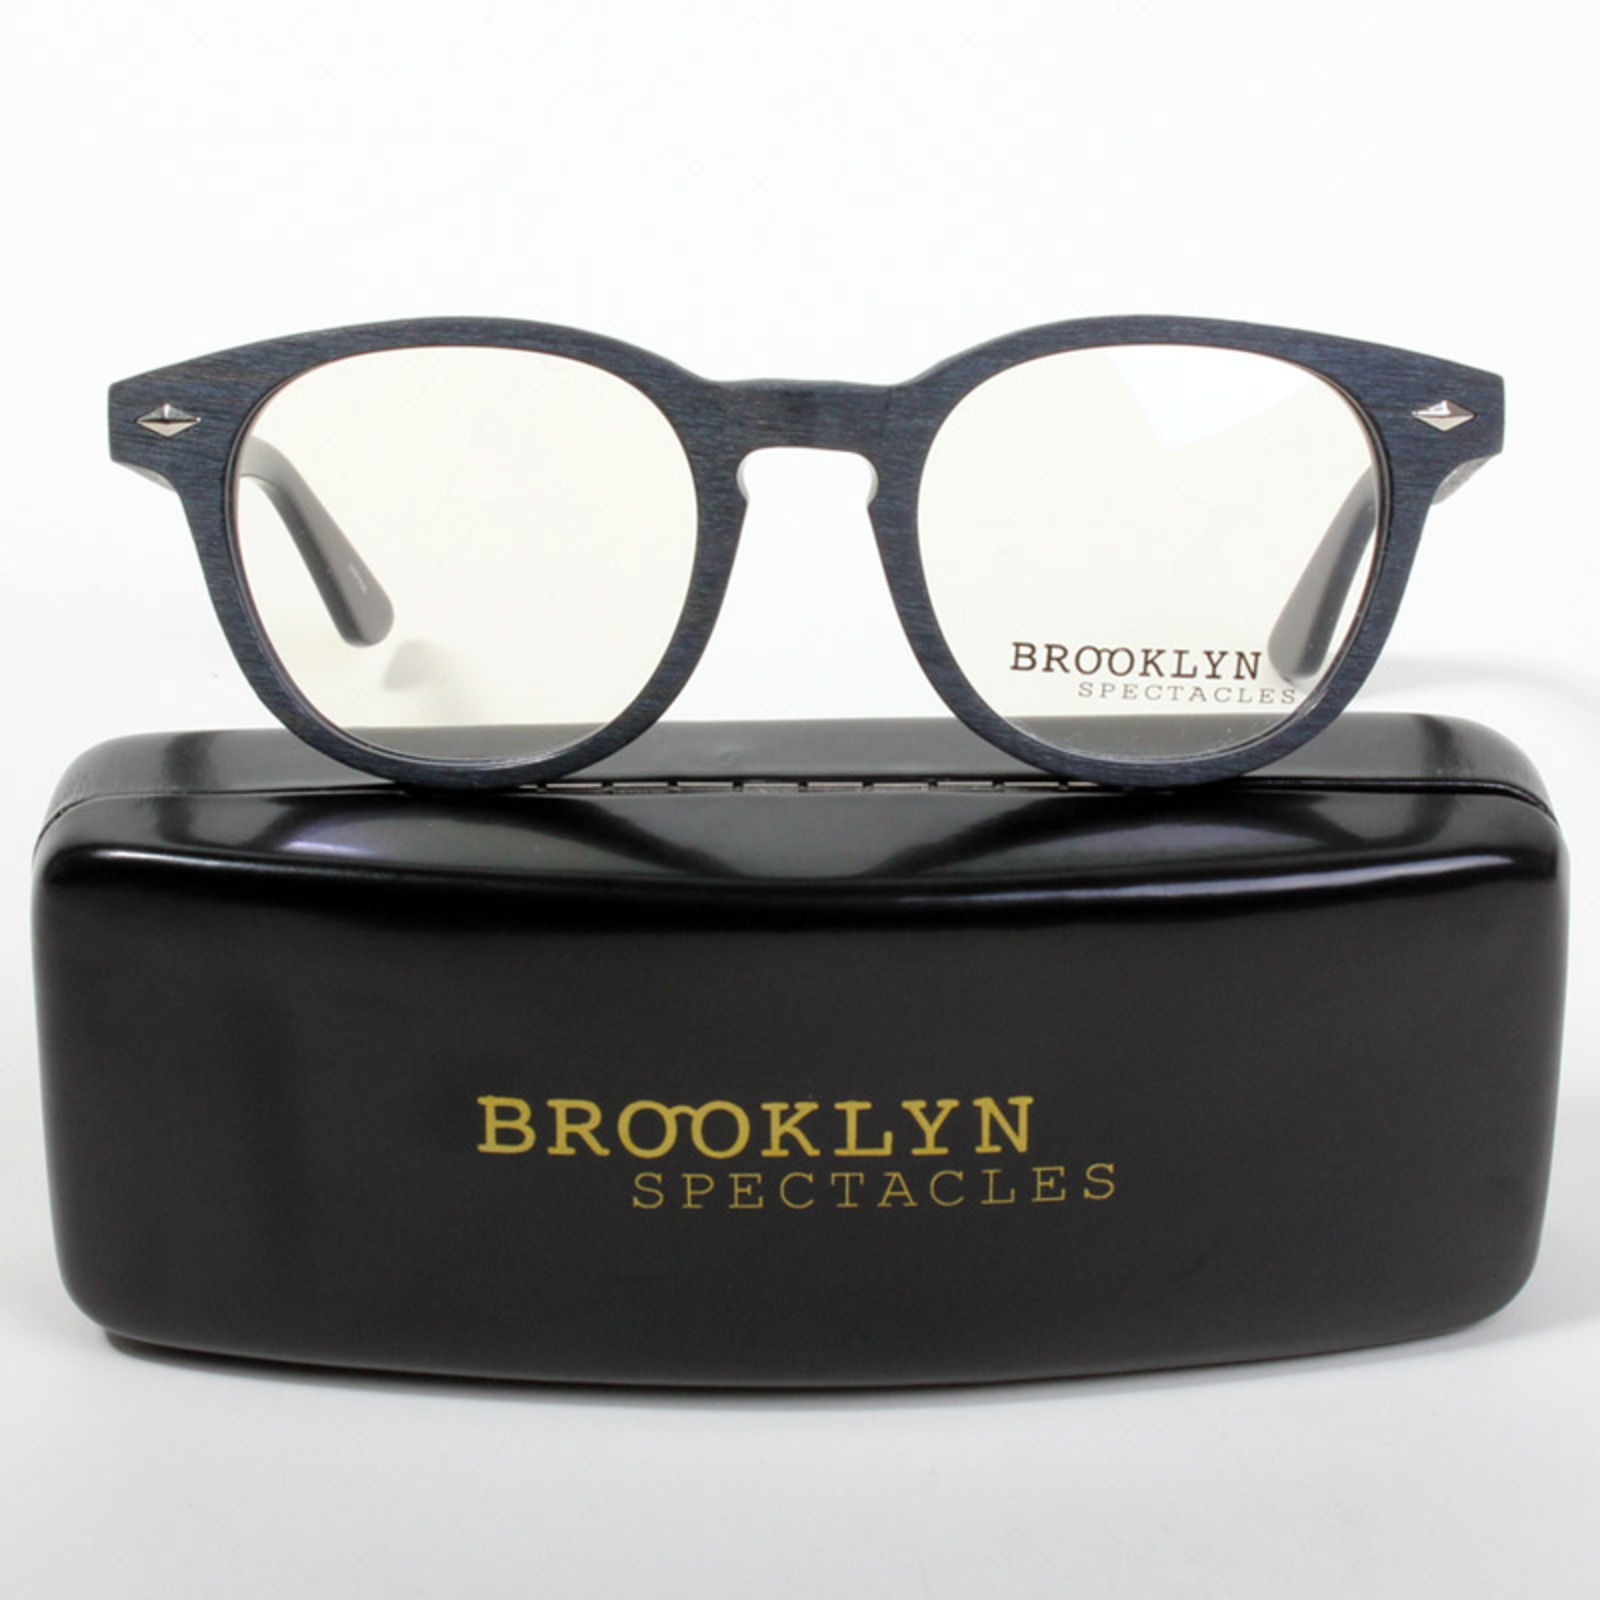 Brooklyn Spectacles - Cool Hunting